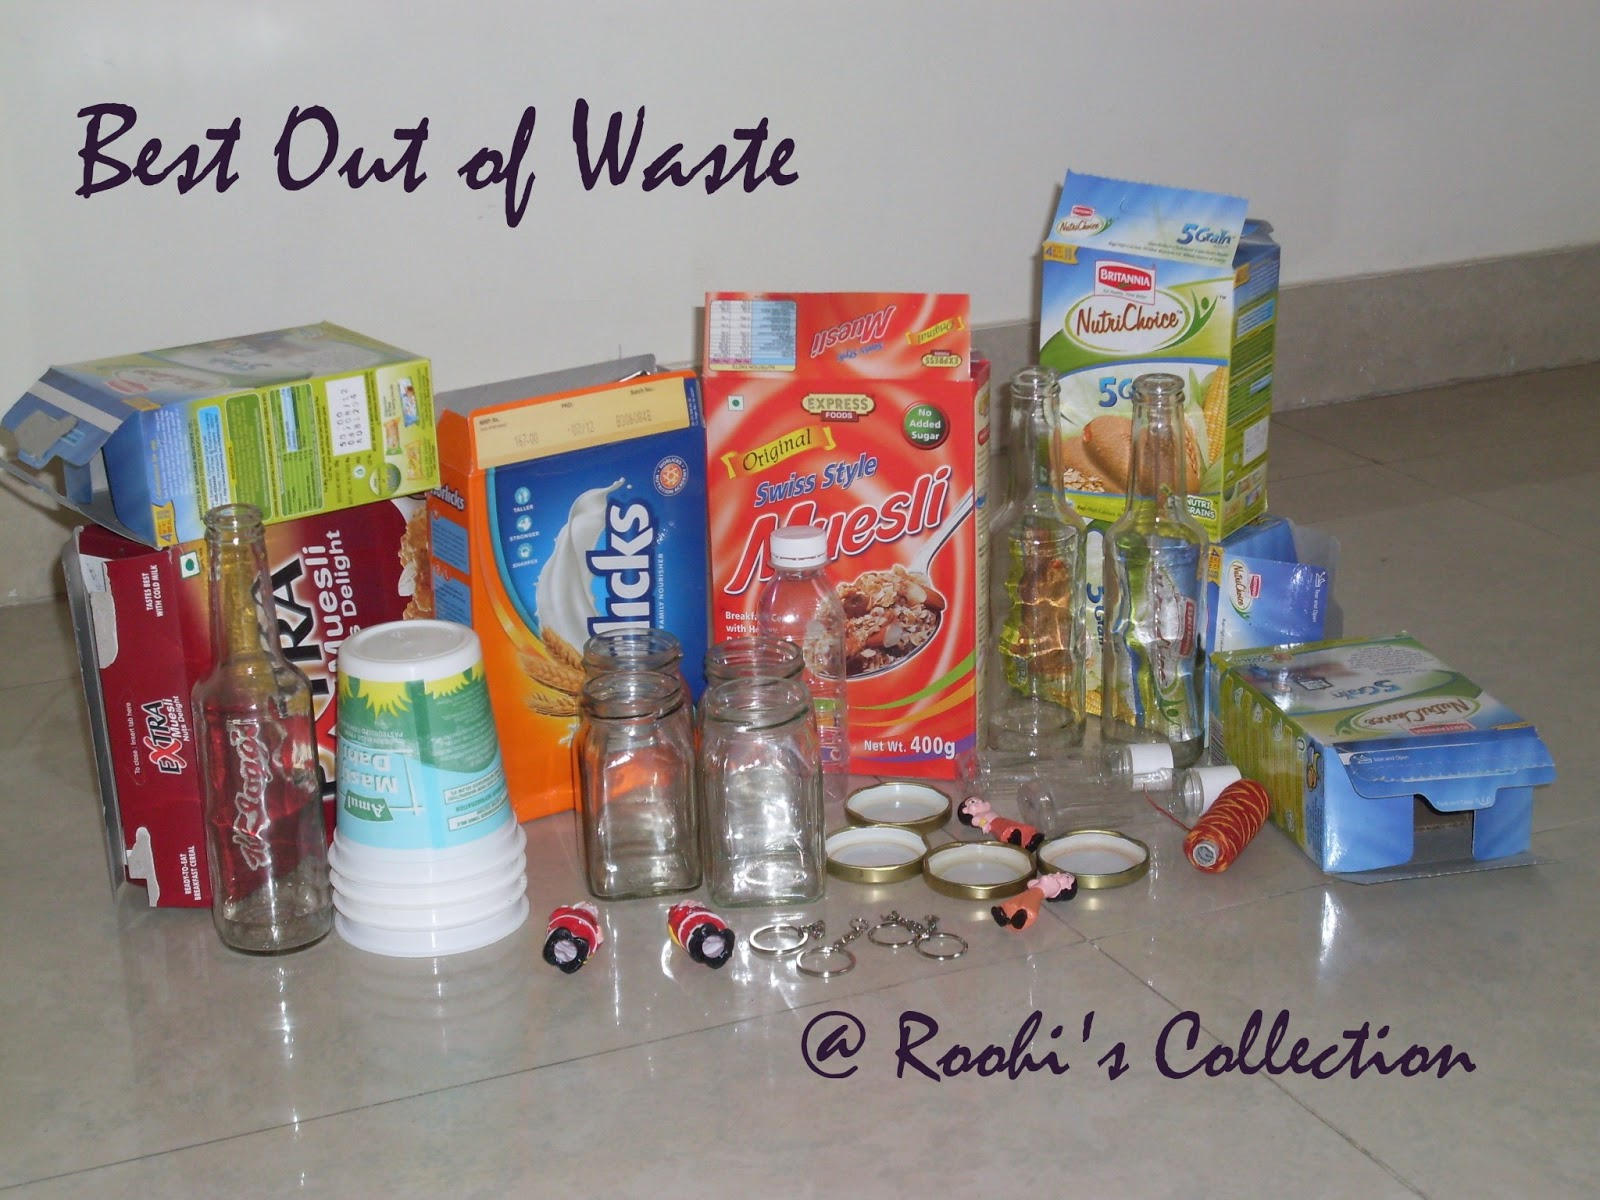 Roohi 39 s collections best out of waste workshop in pune for What is best out of waste